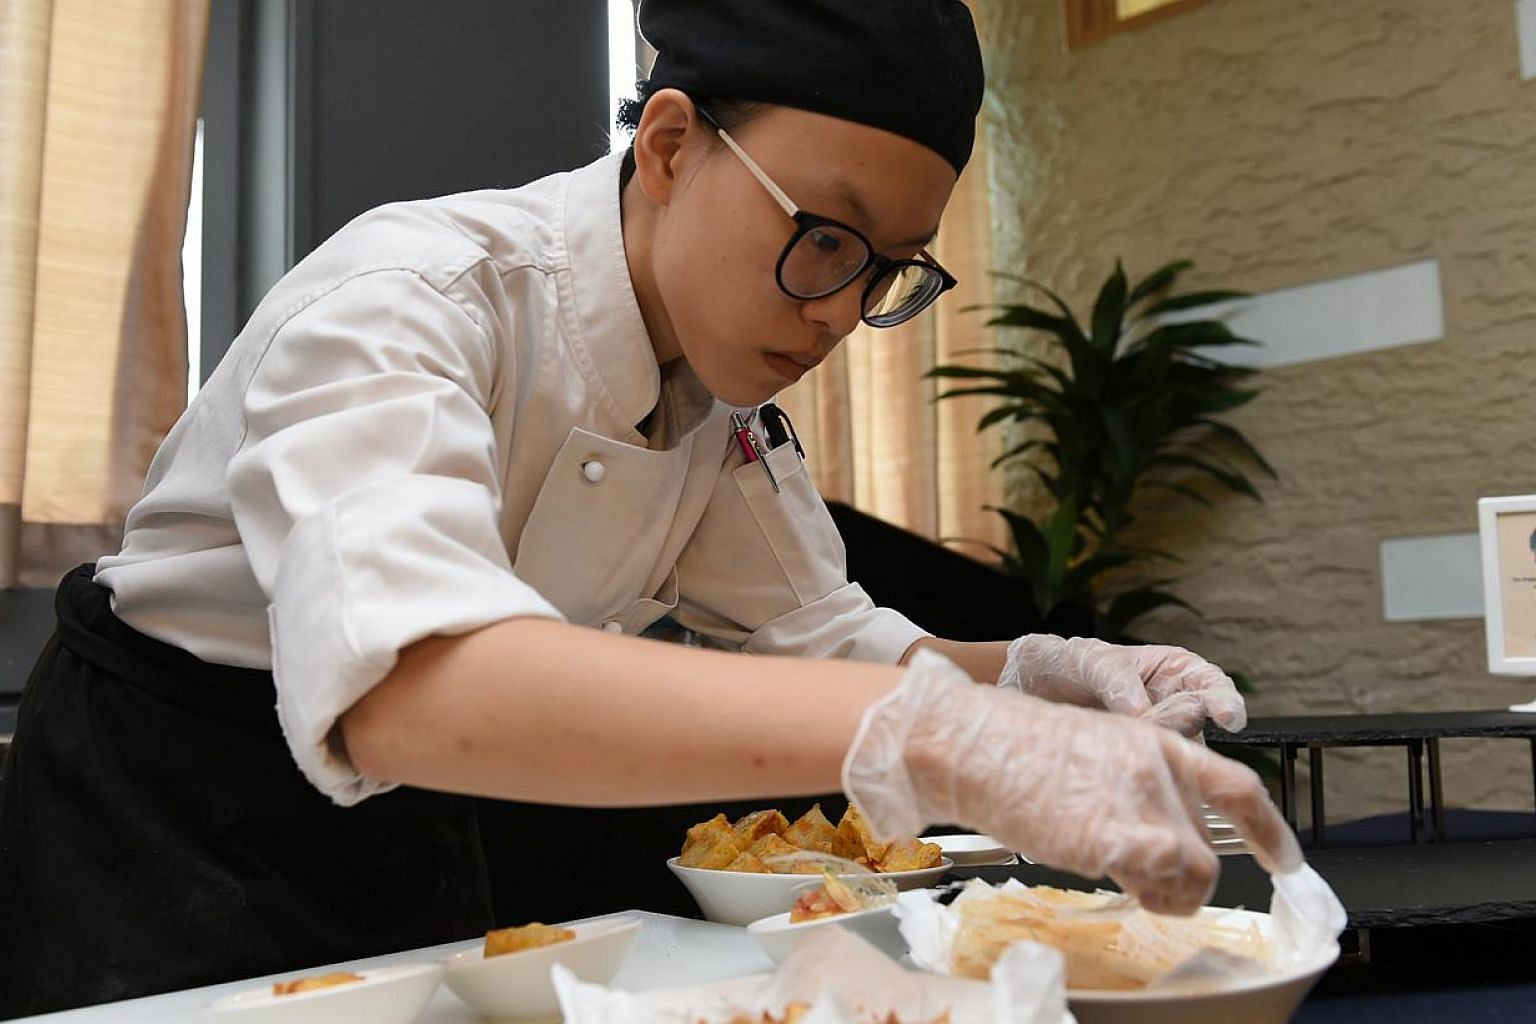 Nanyang Polytechnic student Celine Lee adding the final touches to her reinterpretation of carrot cake at the launch of The Singapore Heritage Cookbook: Past, Present, Future yesterday.